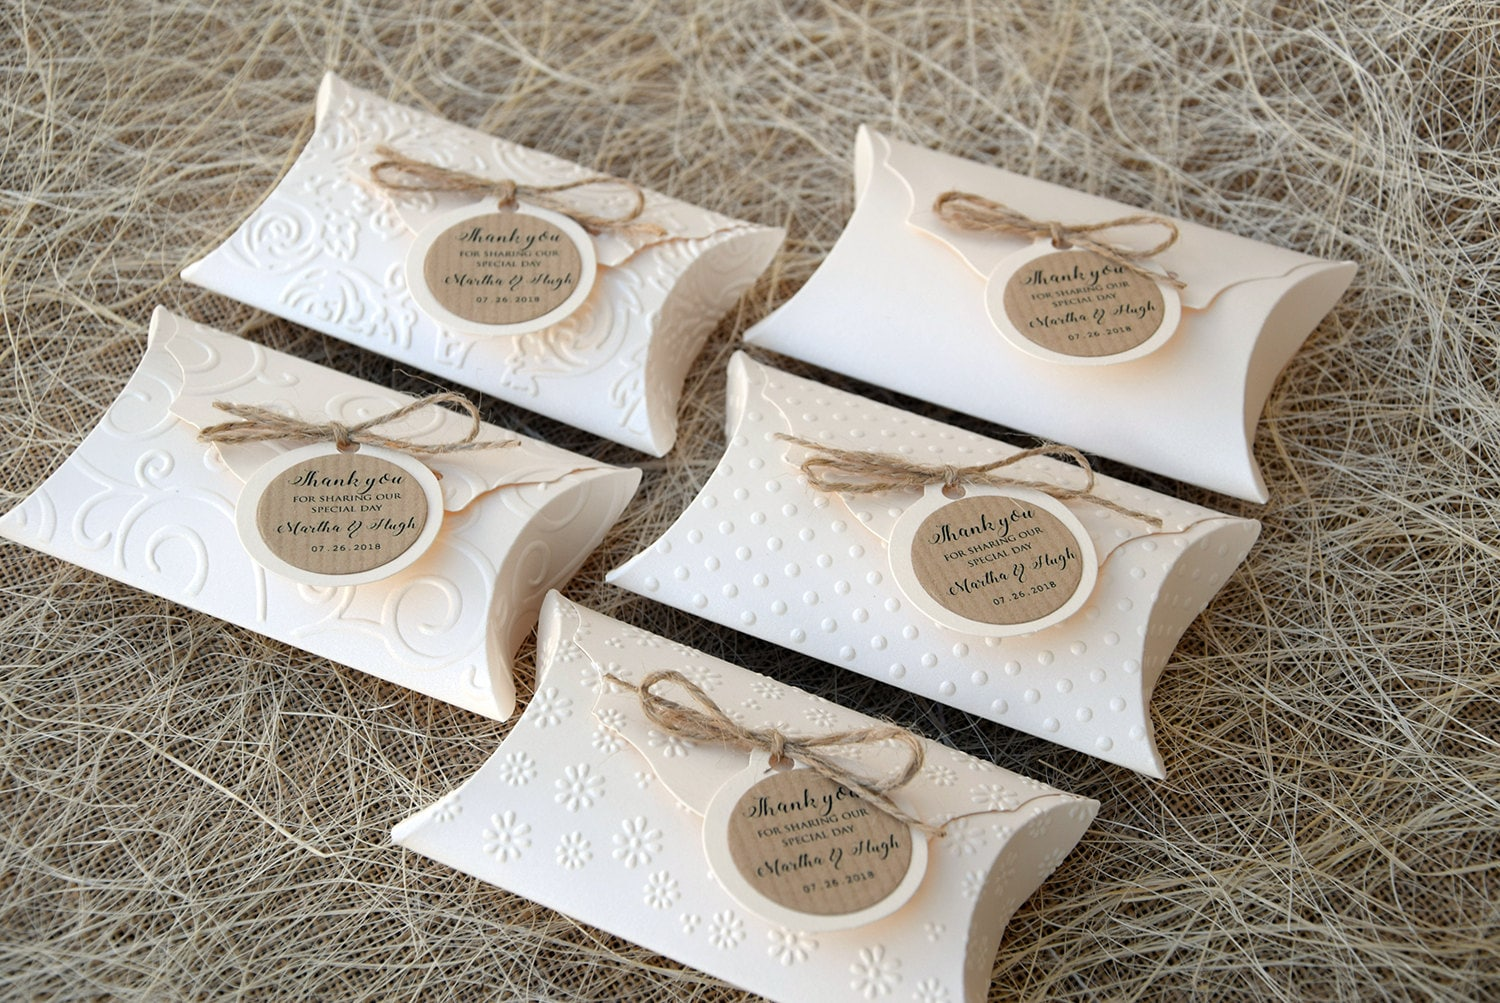 Wedding favor boxes 5 Party Favor Boxes Embossed Party